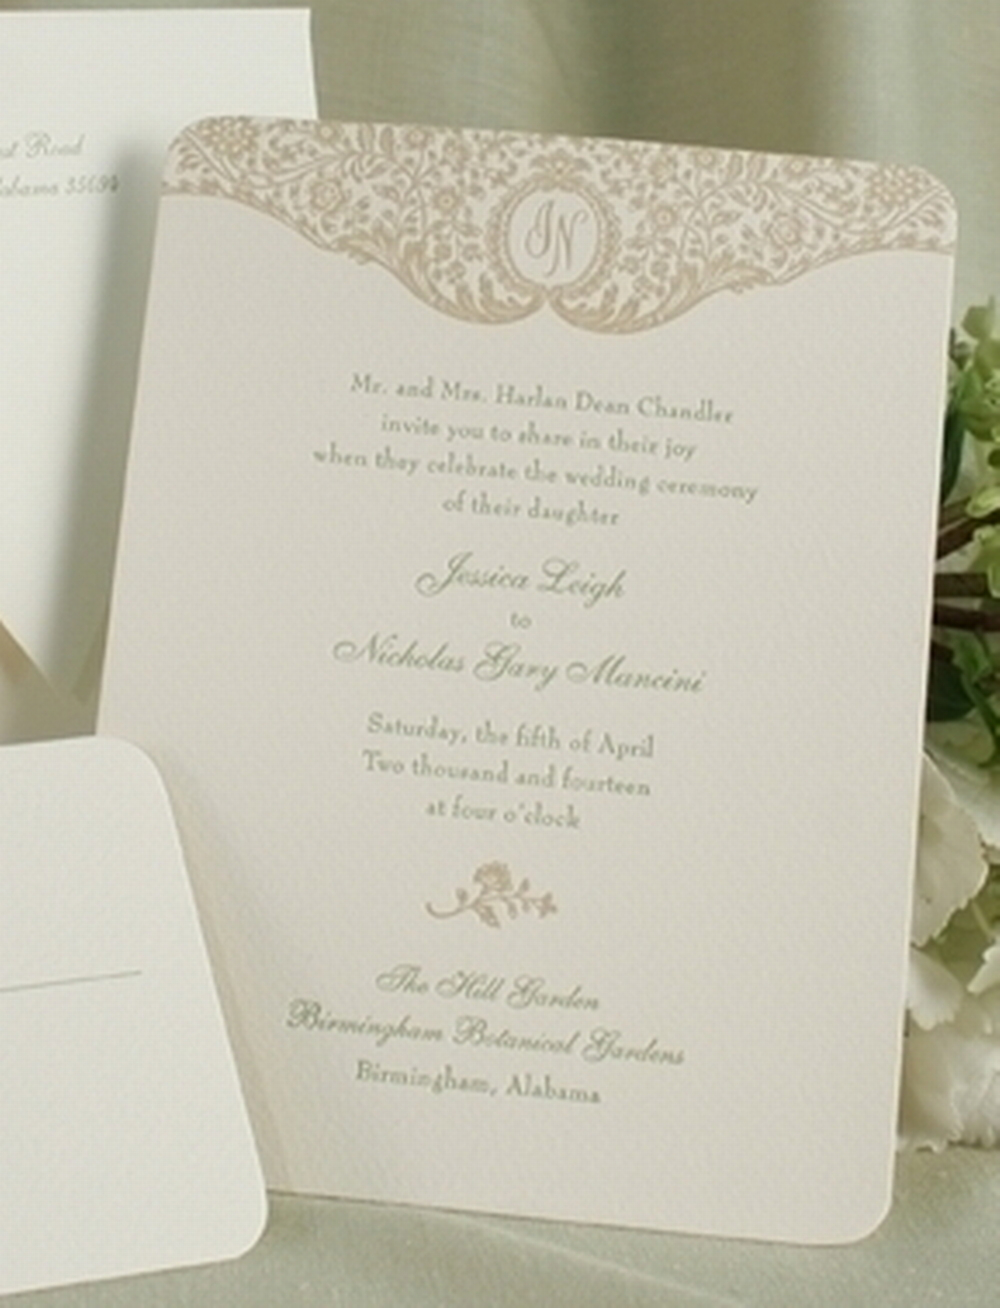 How to Get Discount Wedding Invitations That seem To Be Expensive letterpress-wedding-invitations-wa163_00_200